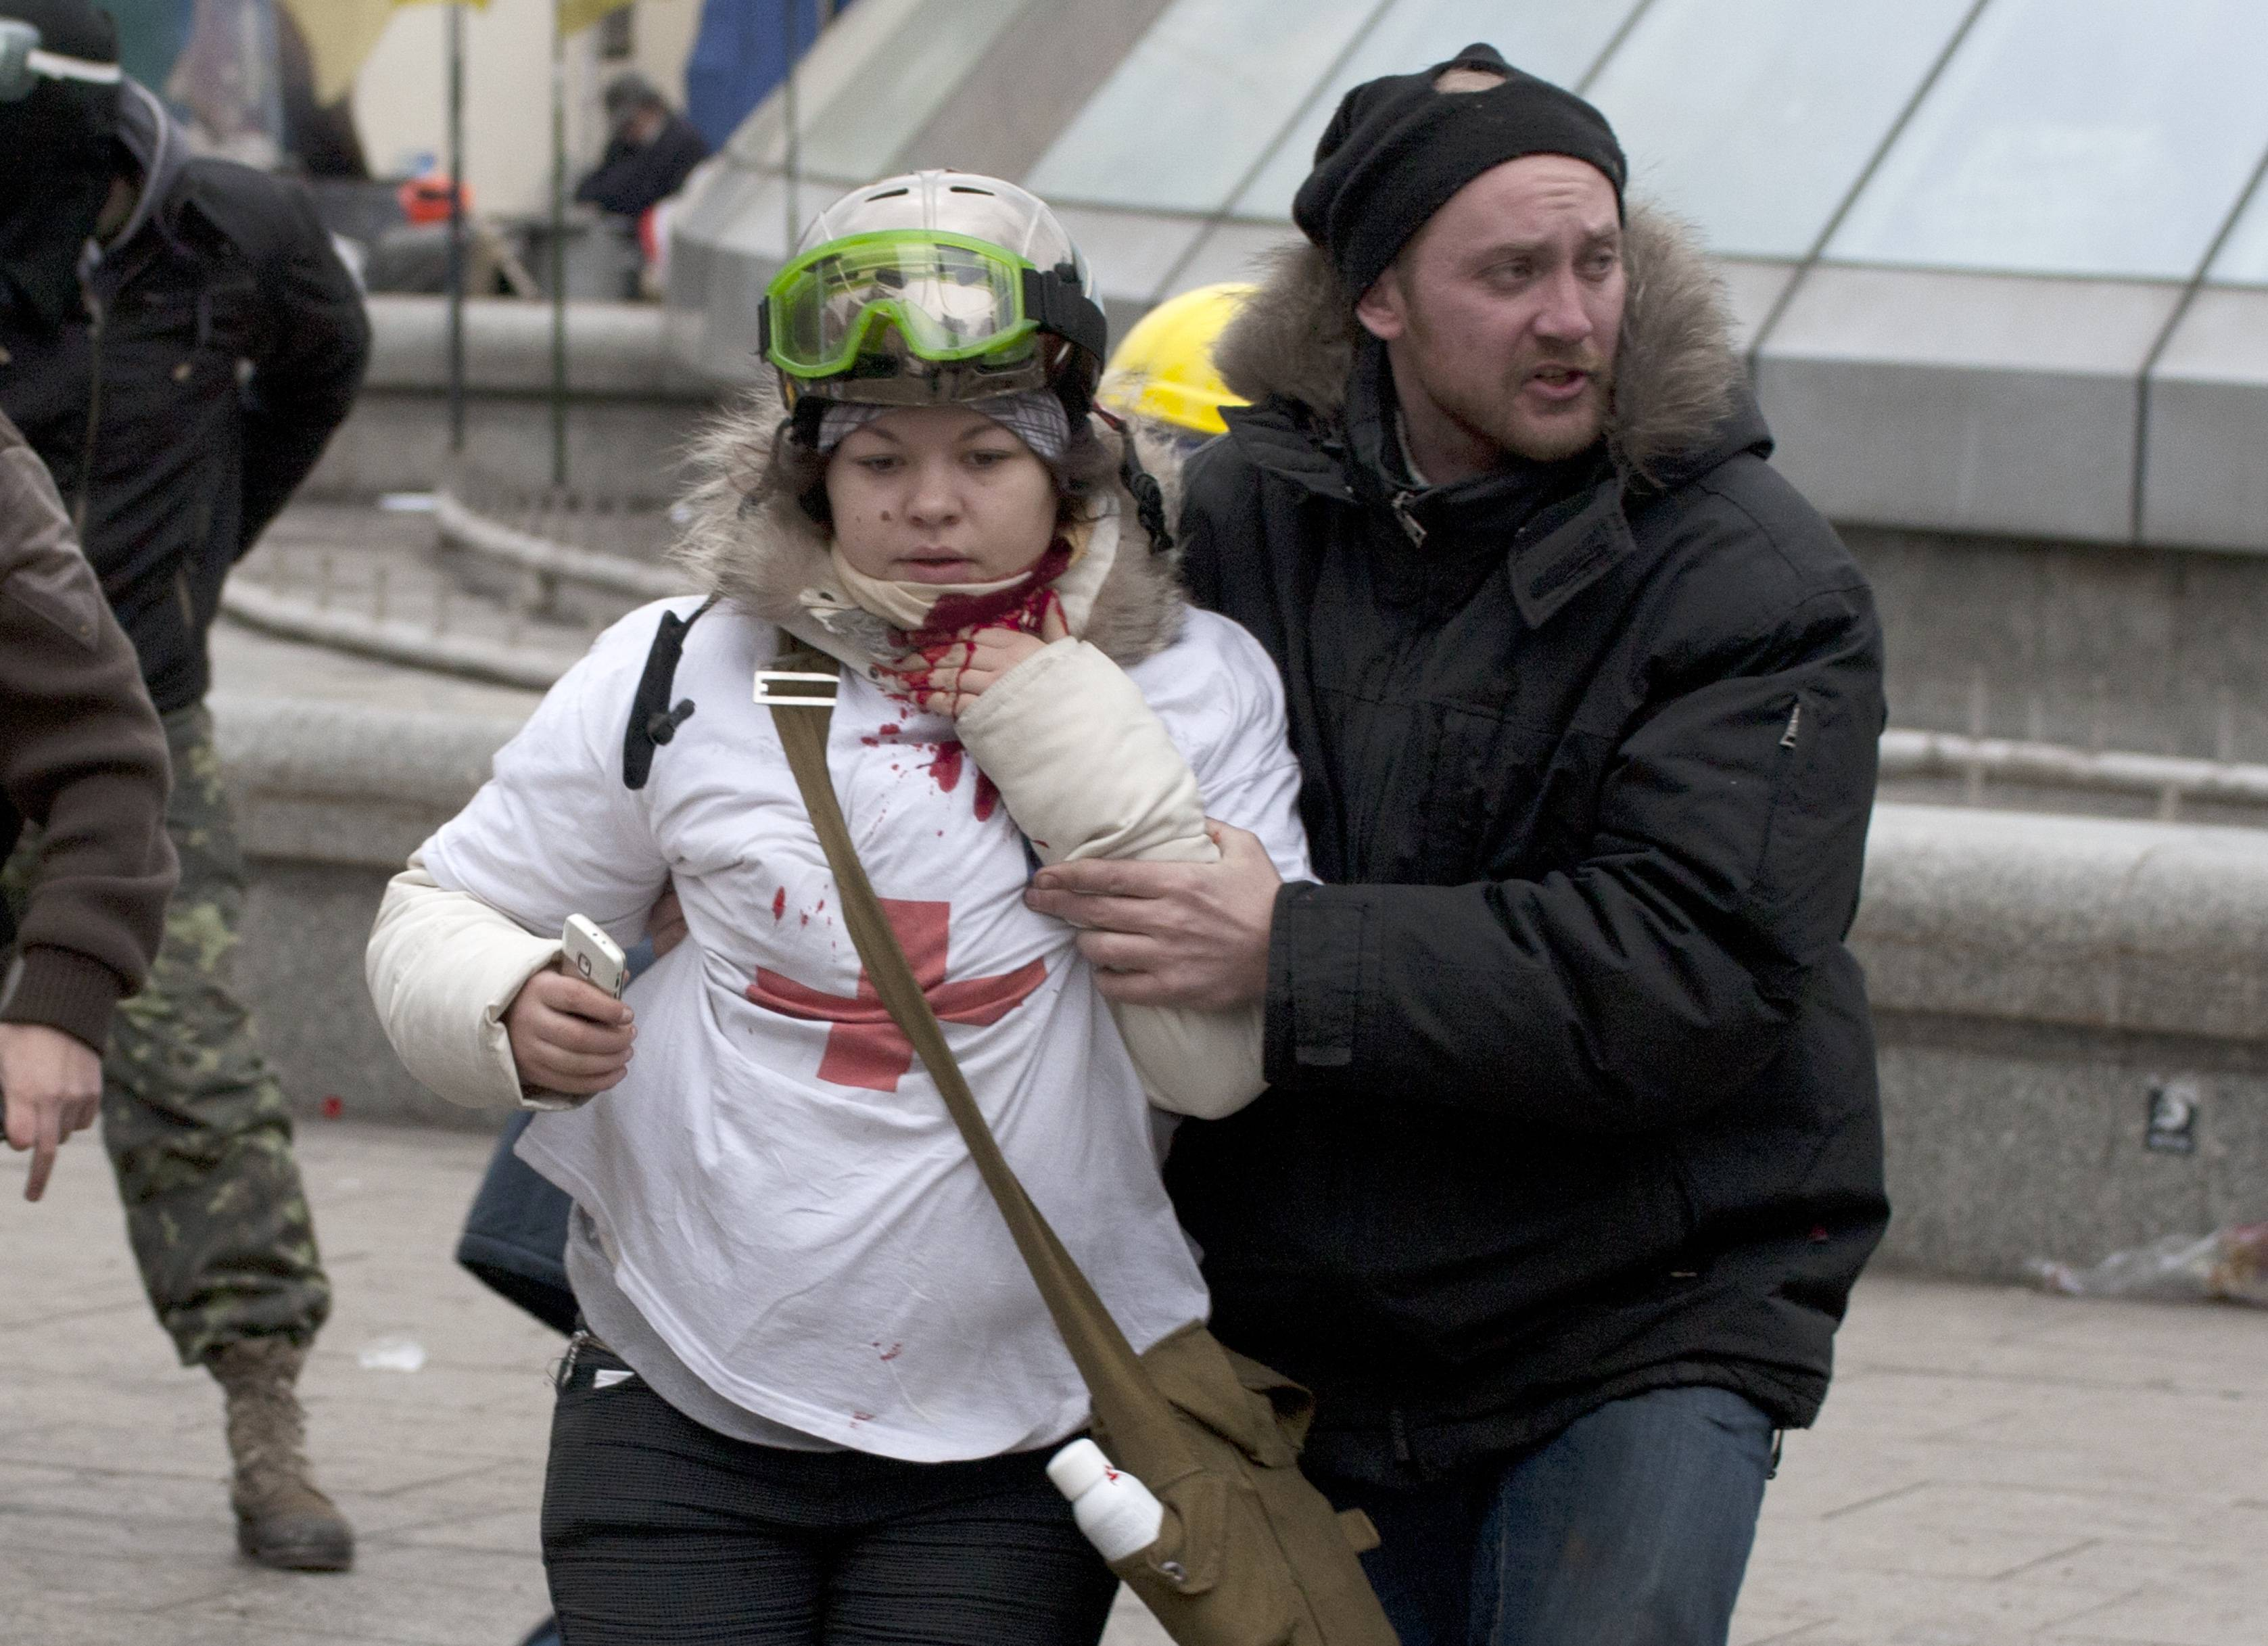 "Olesya Zhukovska, left, is helped after being shot in her neck by a sniper bullet, in Independence Square, the epicenter of the country's current unrest, Kiev, Ukraine. ""I am dying,"" Olesya Zhukovska, a 21-year-old volunteer medic, wrote on Twitter, minutes after she was shot as deadly clashes broke out in the center of the Ukrainian capital between protesters and police. The tweet, accompanied by a photo of her clutching her bleeding neck and being led away under fire, went viral, as social media users around the world presumed she had died and shared their grief and anger. But Zhukovska survived. She has become a symbol of the three-month protest of President Viktor Yanukovych's government and a movement for closer ties with the West and human rights."